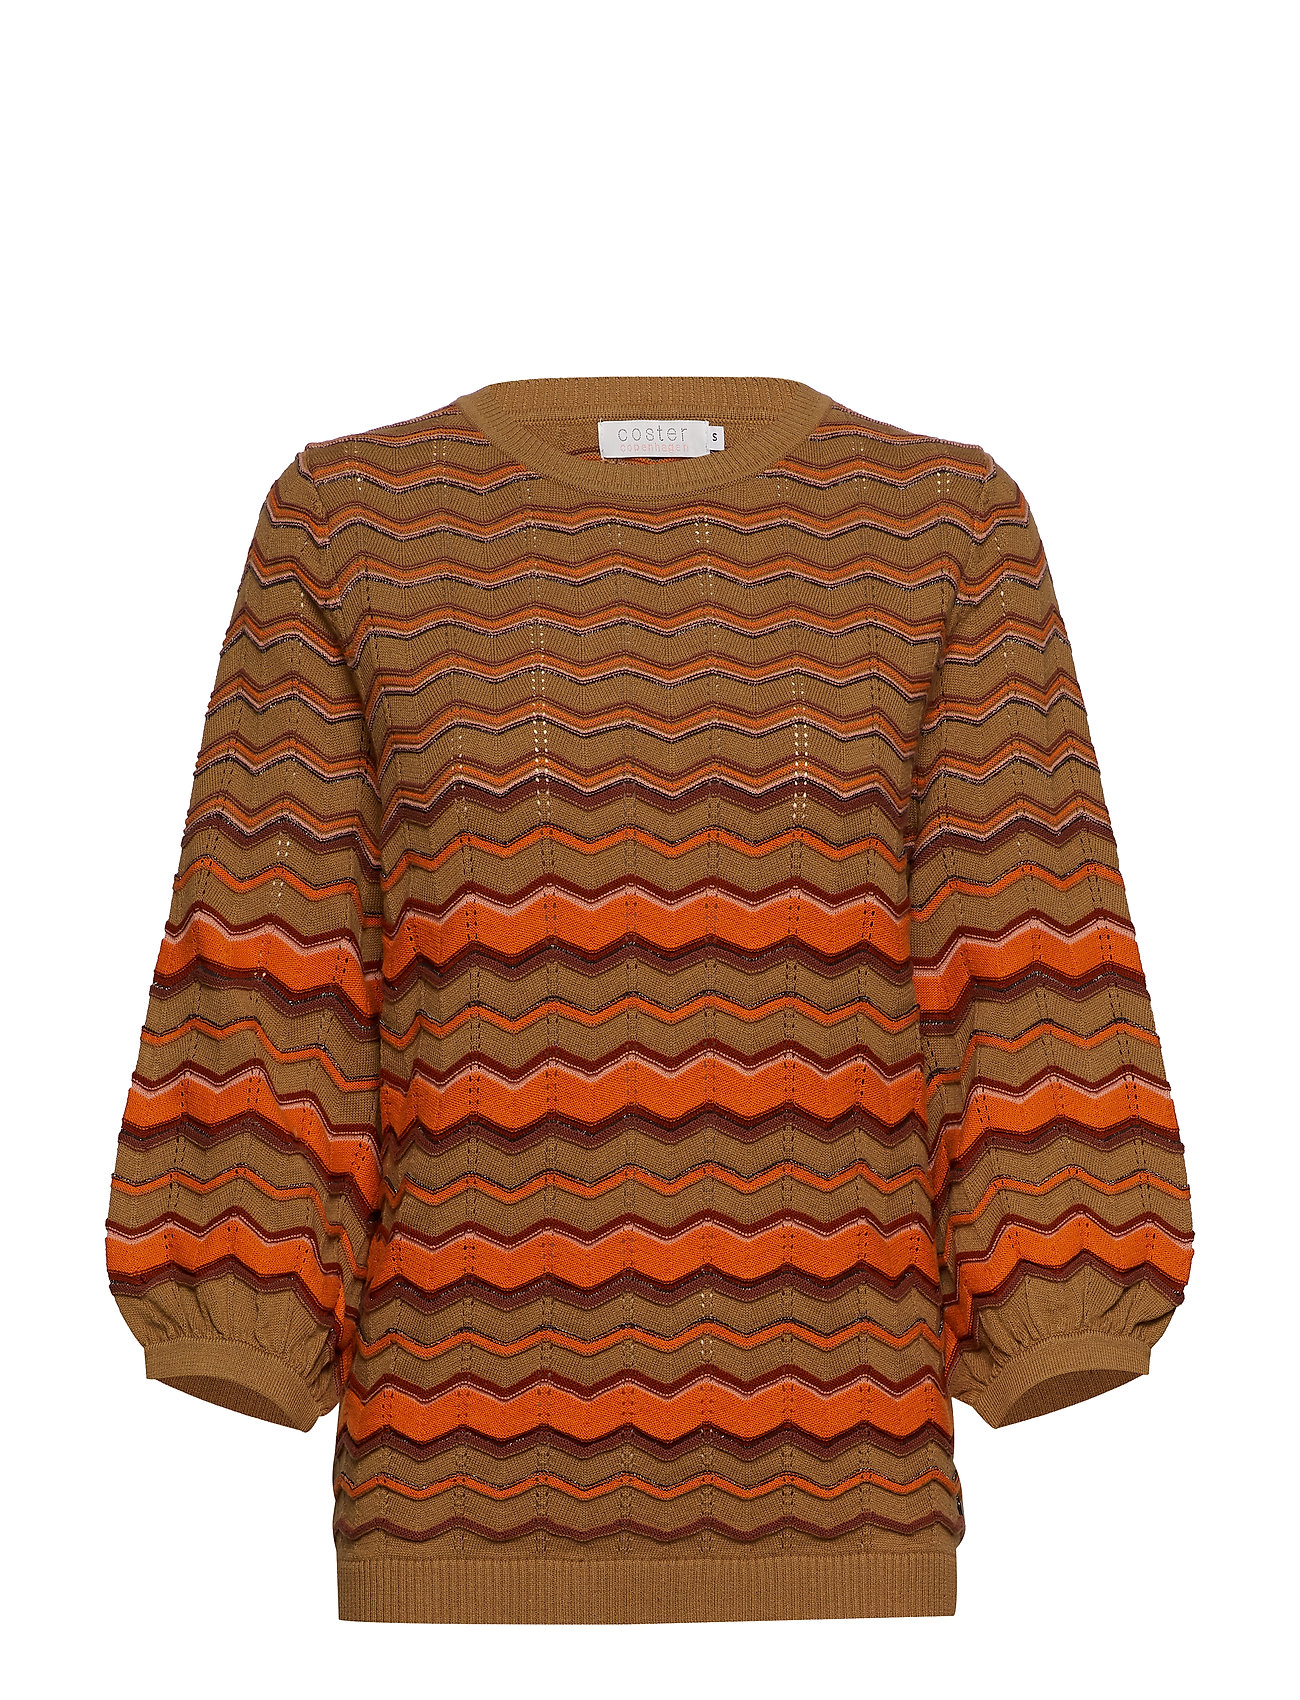 Coster Copenhagen Knit in multi color w. volume sleev - NOMADE